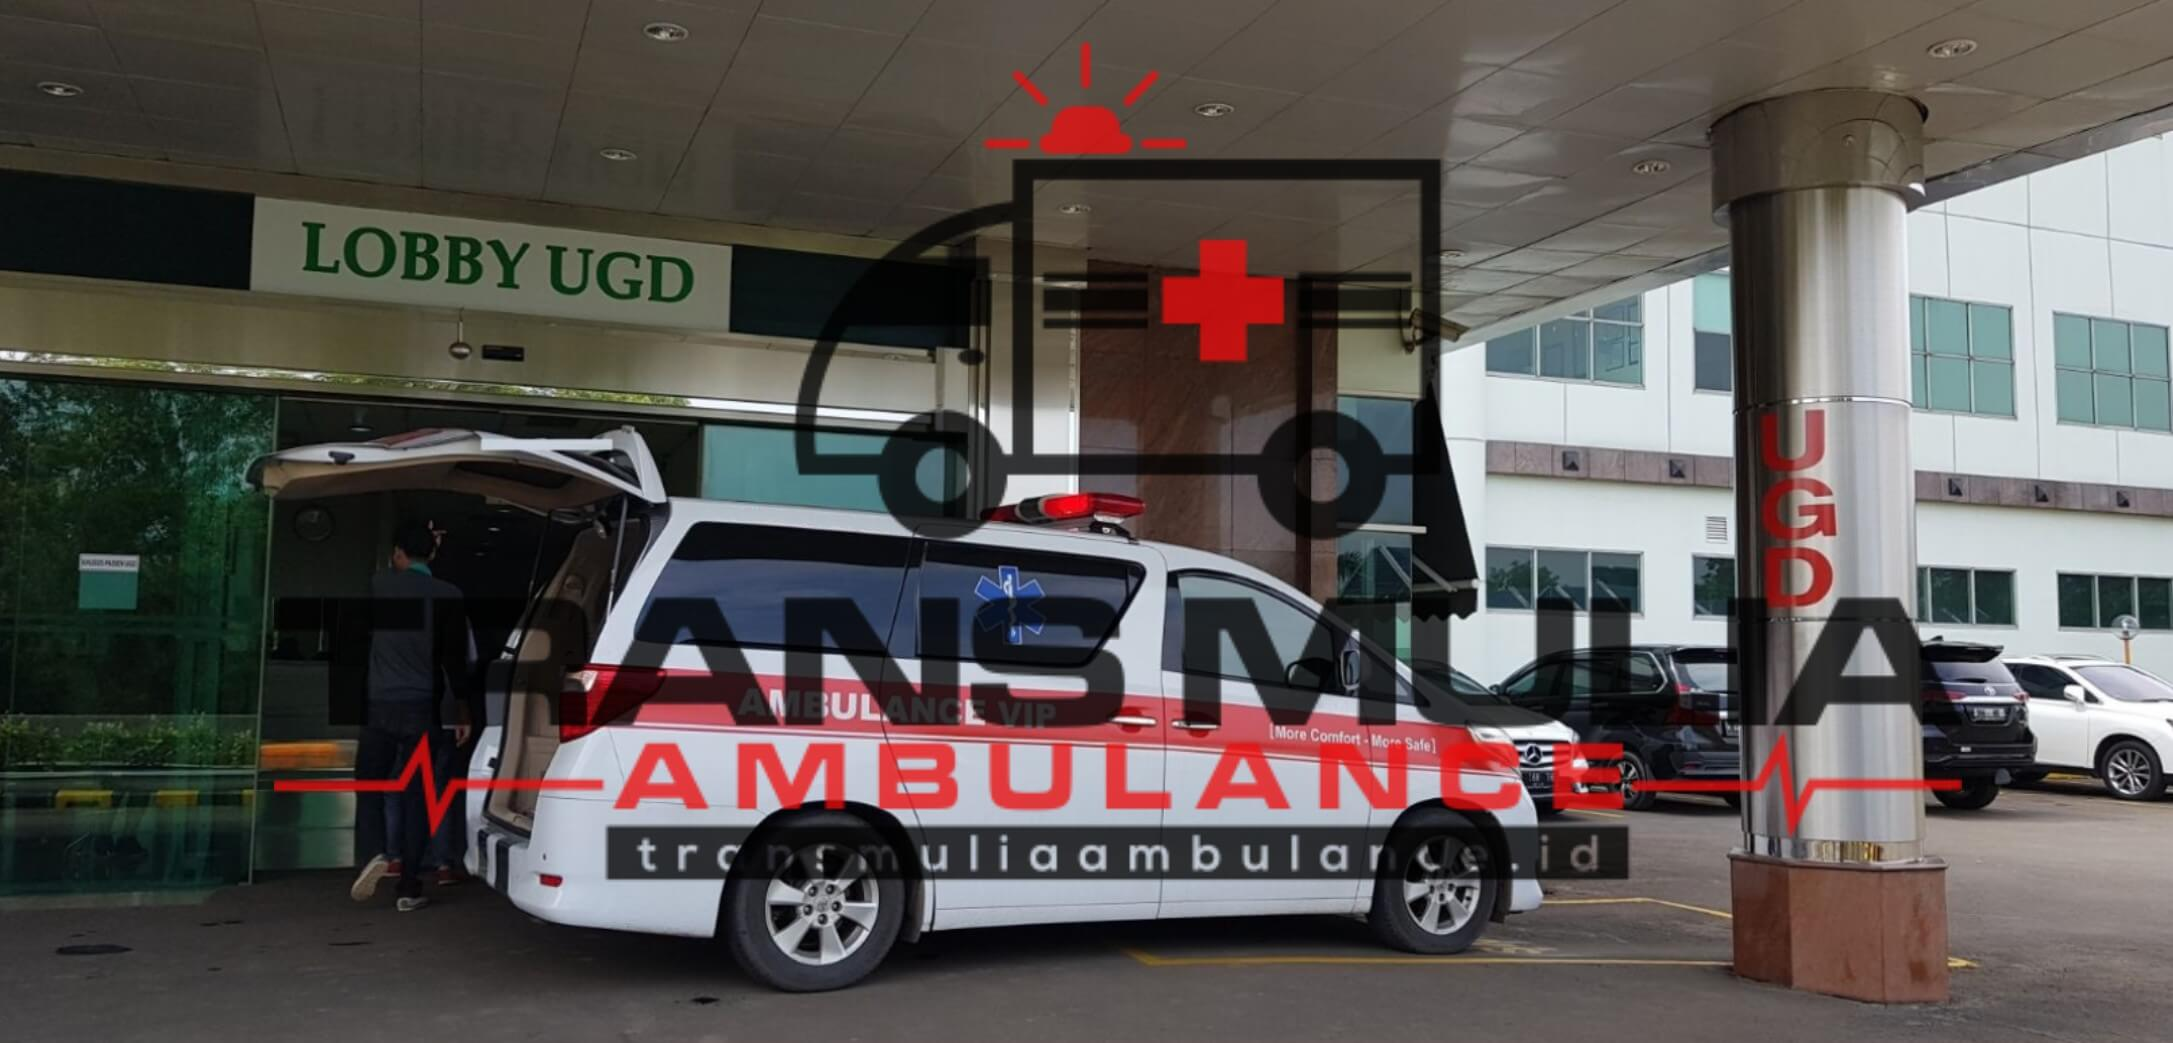 Sewa Ambulance di Indonesia